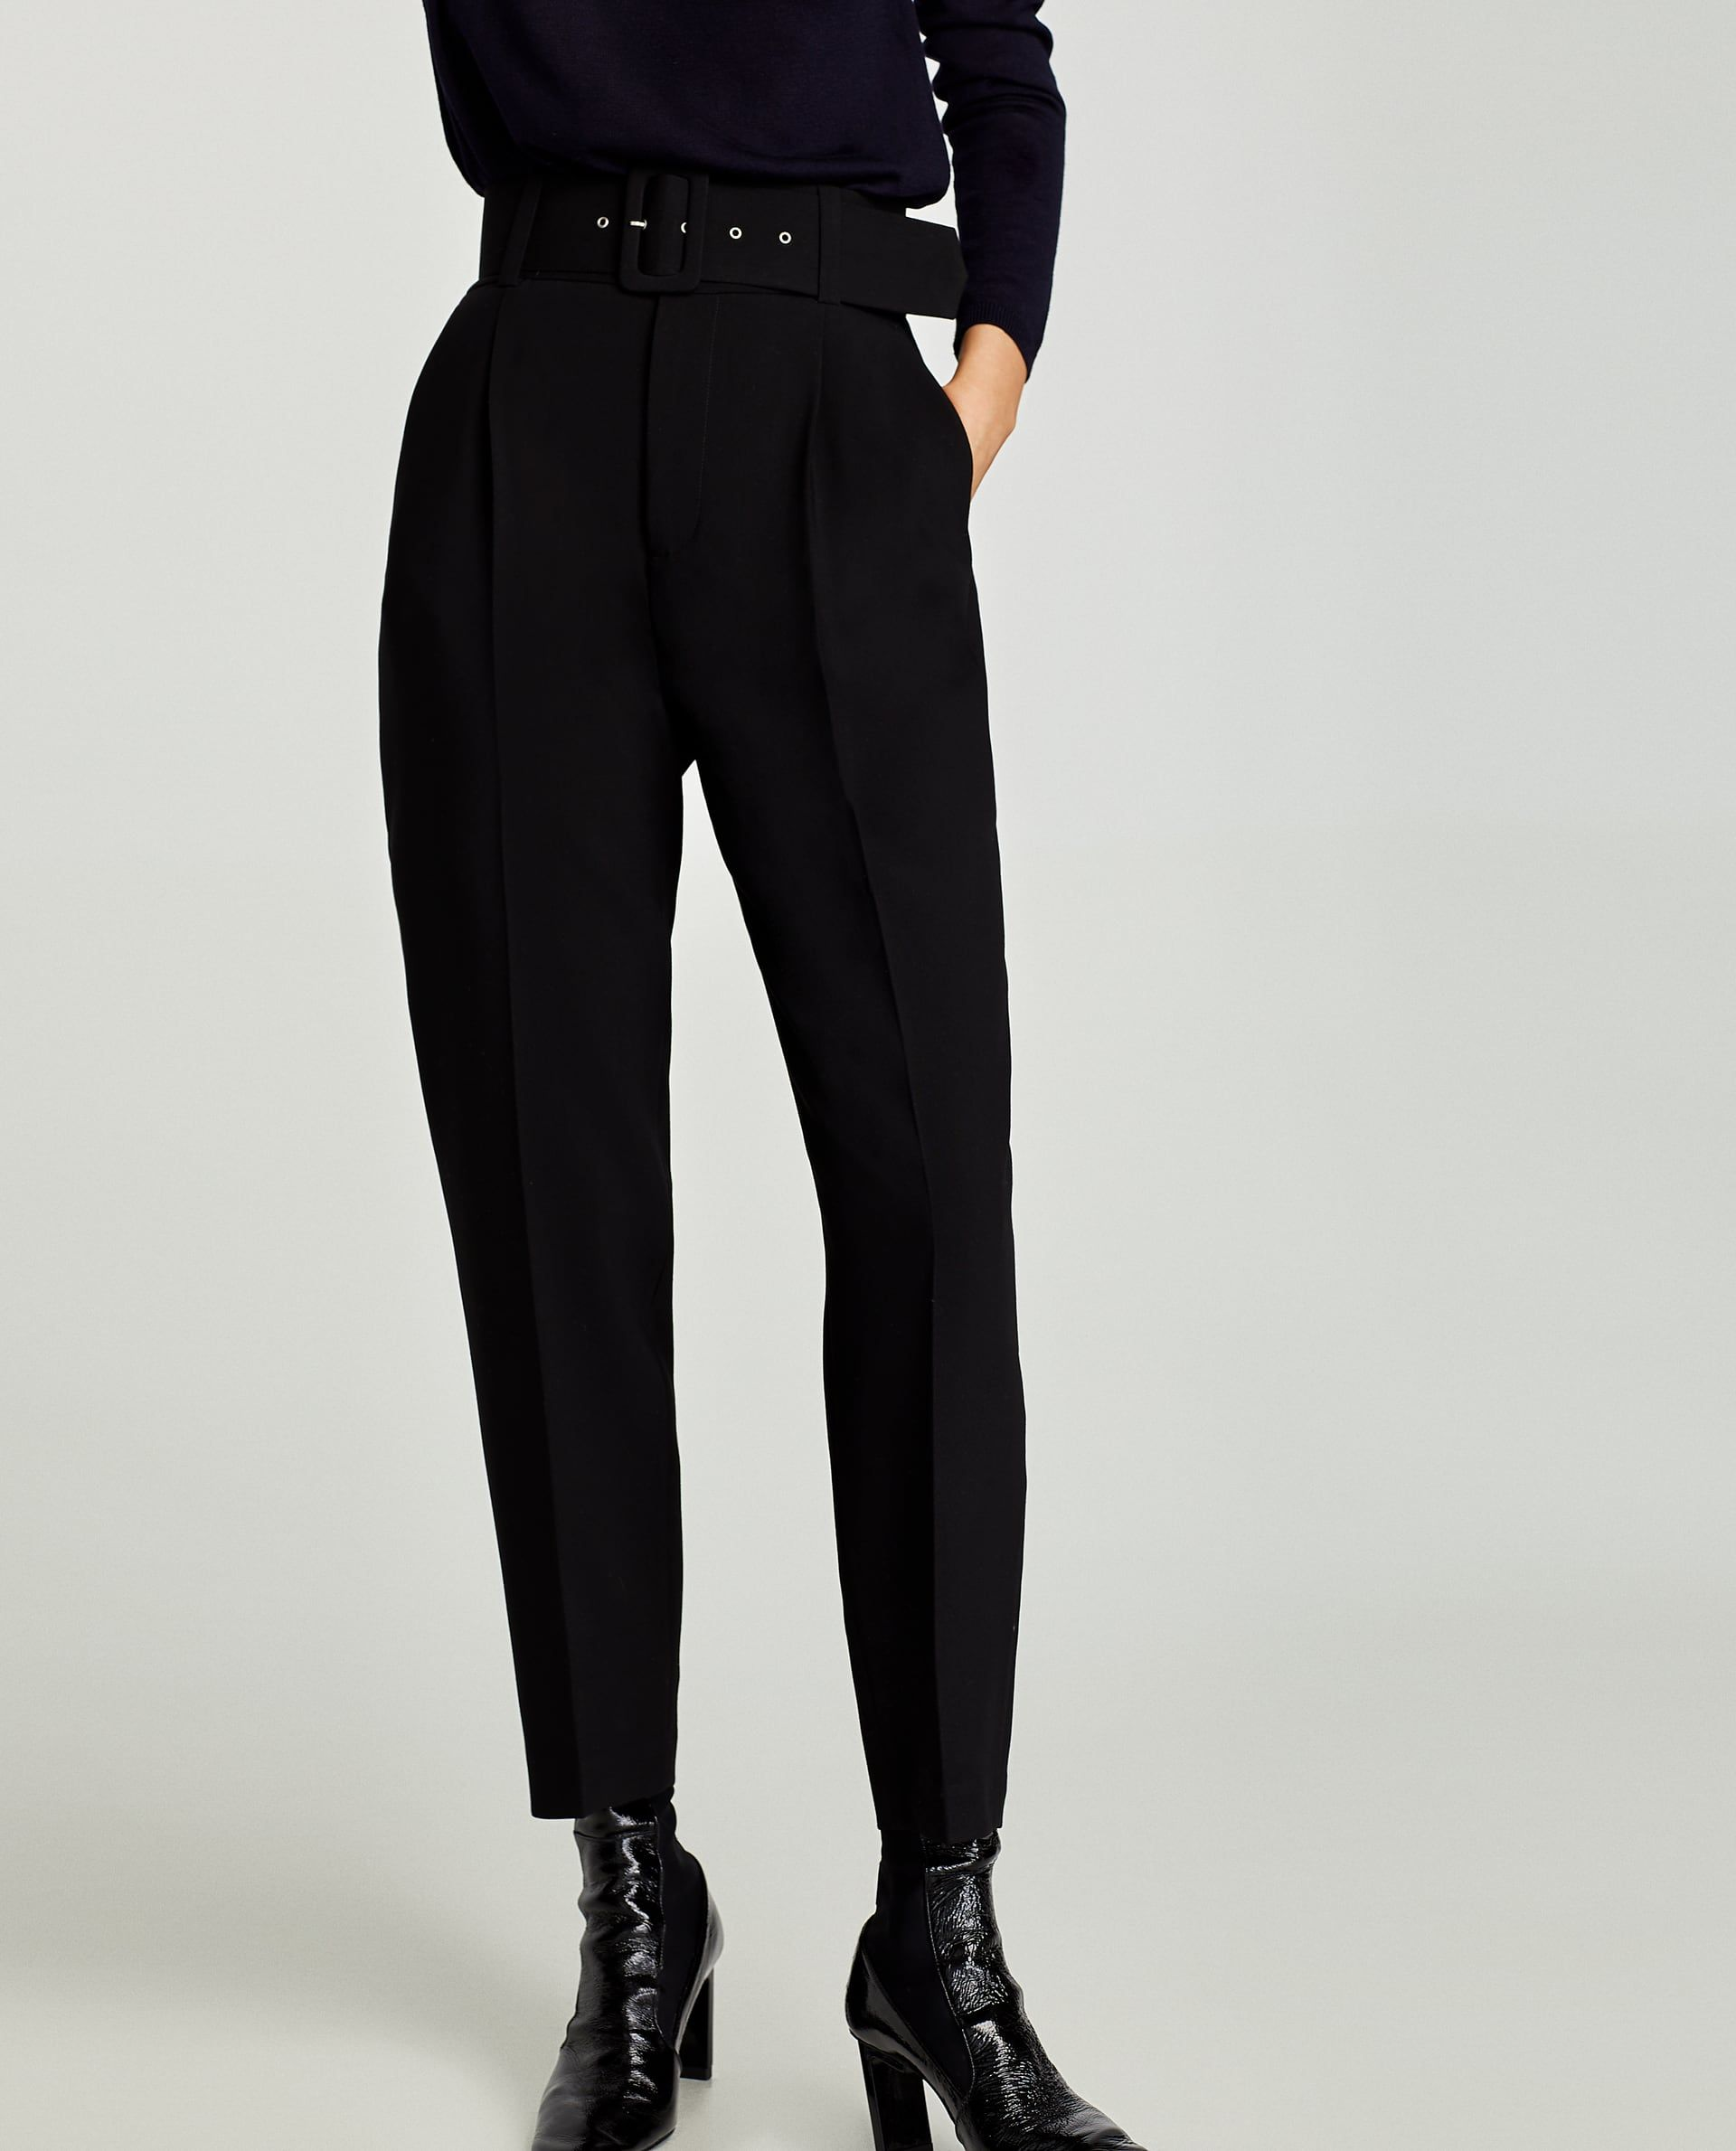 8f57ad2b CREPE TROUSERS WITH BELT from Zara | La Mode in 2019 | Trousers ...